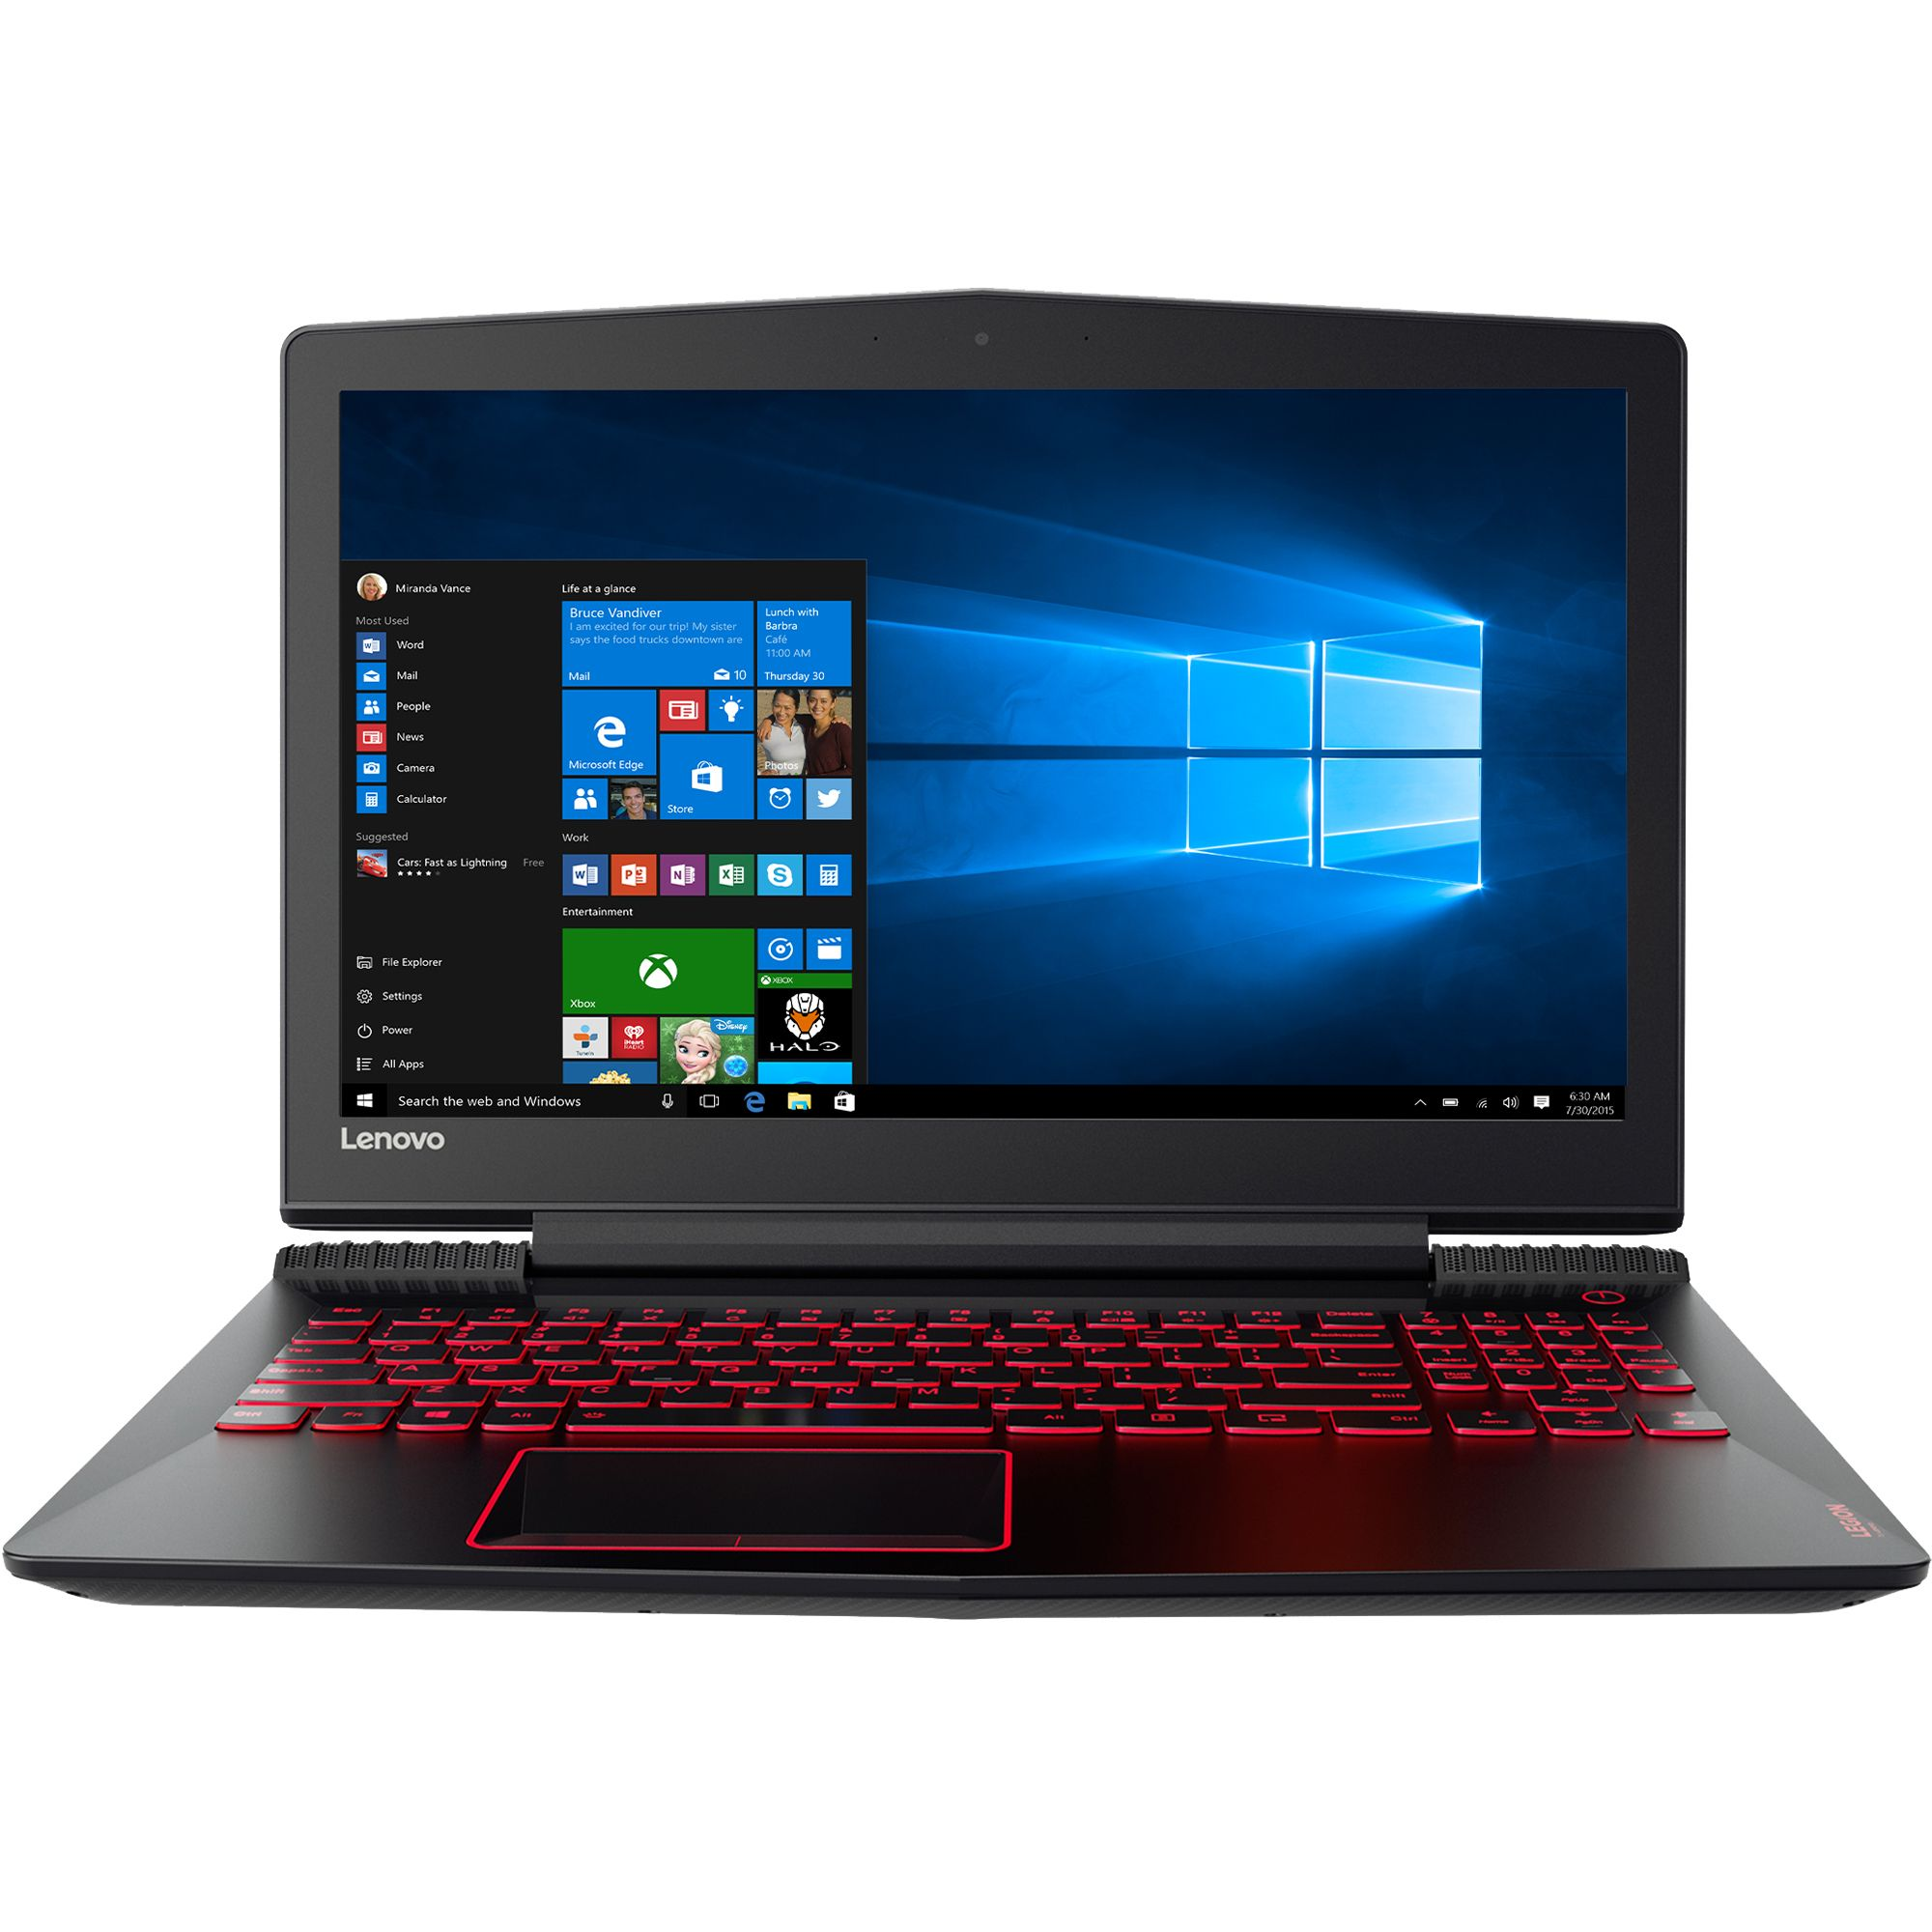 Notebook Lenovo Legion Y520 15.6 Full HD Intel Core i7-7700HQ GTX 1060-6GB RAM 8GB HDD 1TB + SSD 128GB FreeDOS